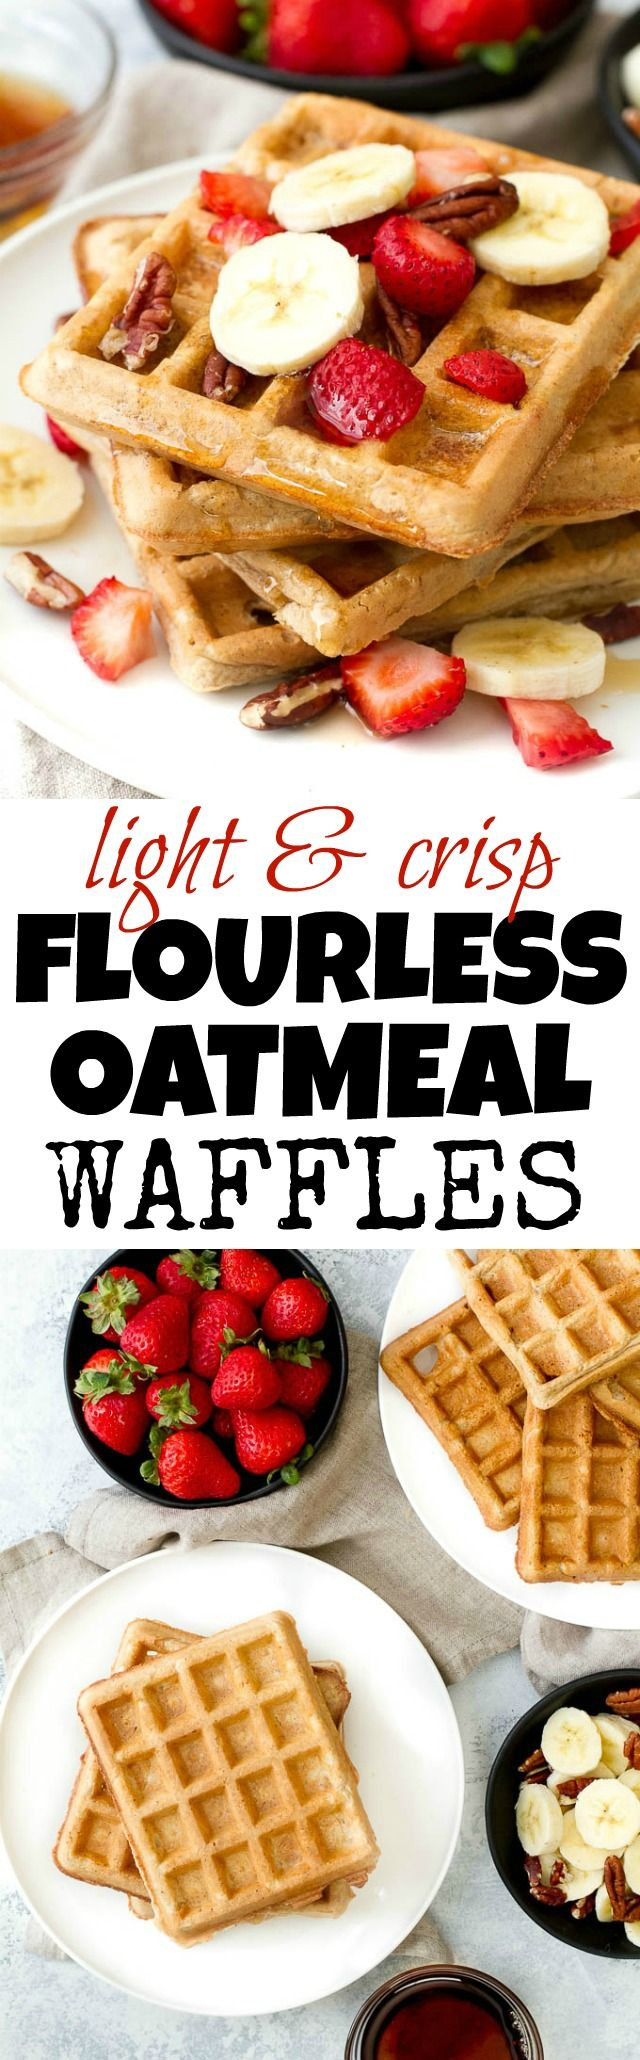 ** Flourless oatmeal waffles that are crispy on the outside, fluffy on the inside, and crazy easy to make! | runningwithspoons.com